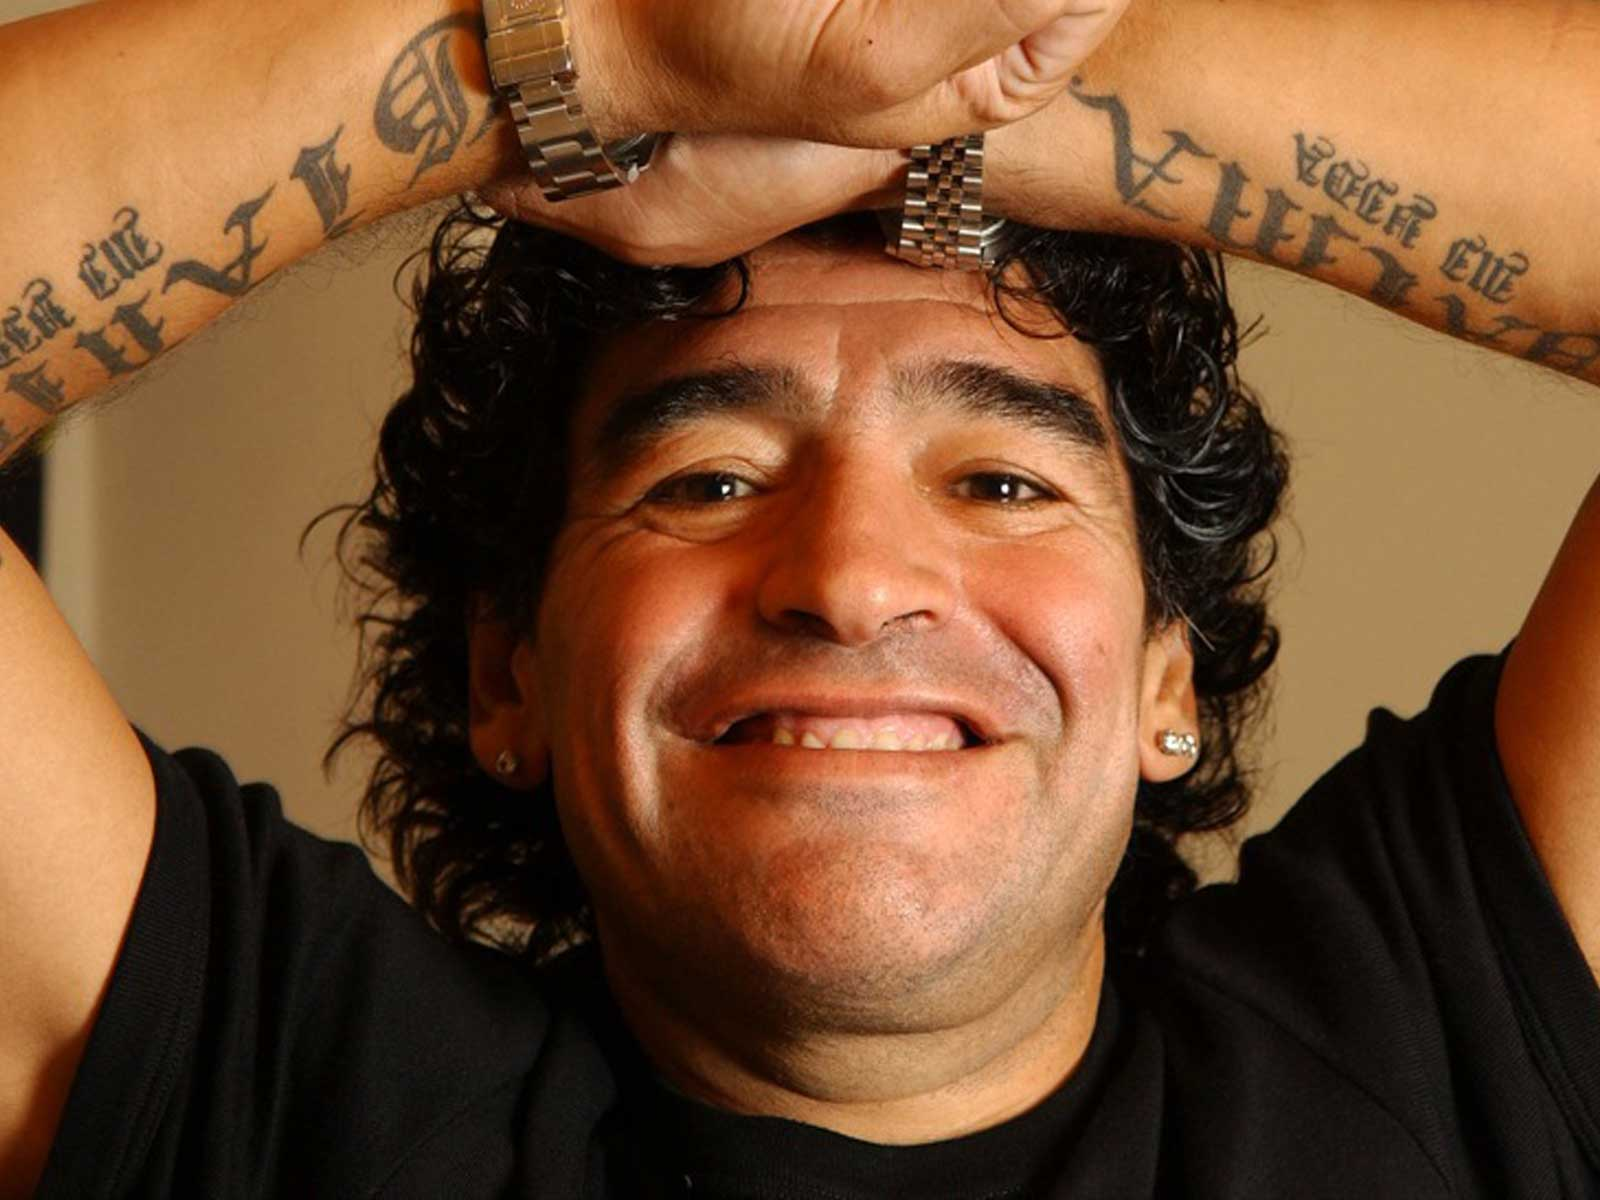 Diego Maradona set to continue his playing career at age of 53: Reports